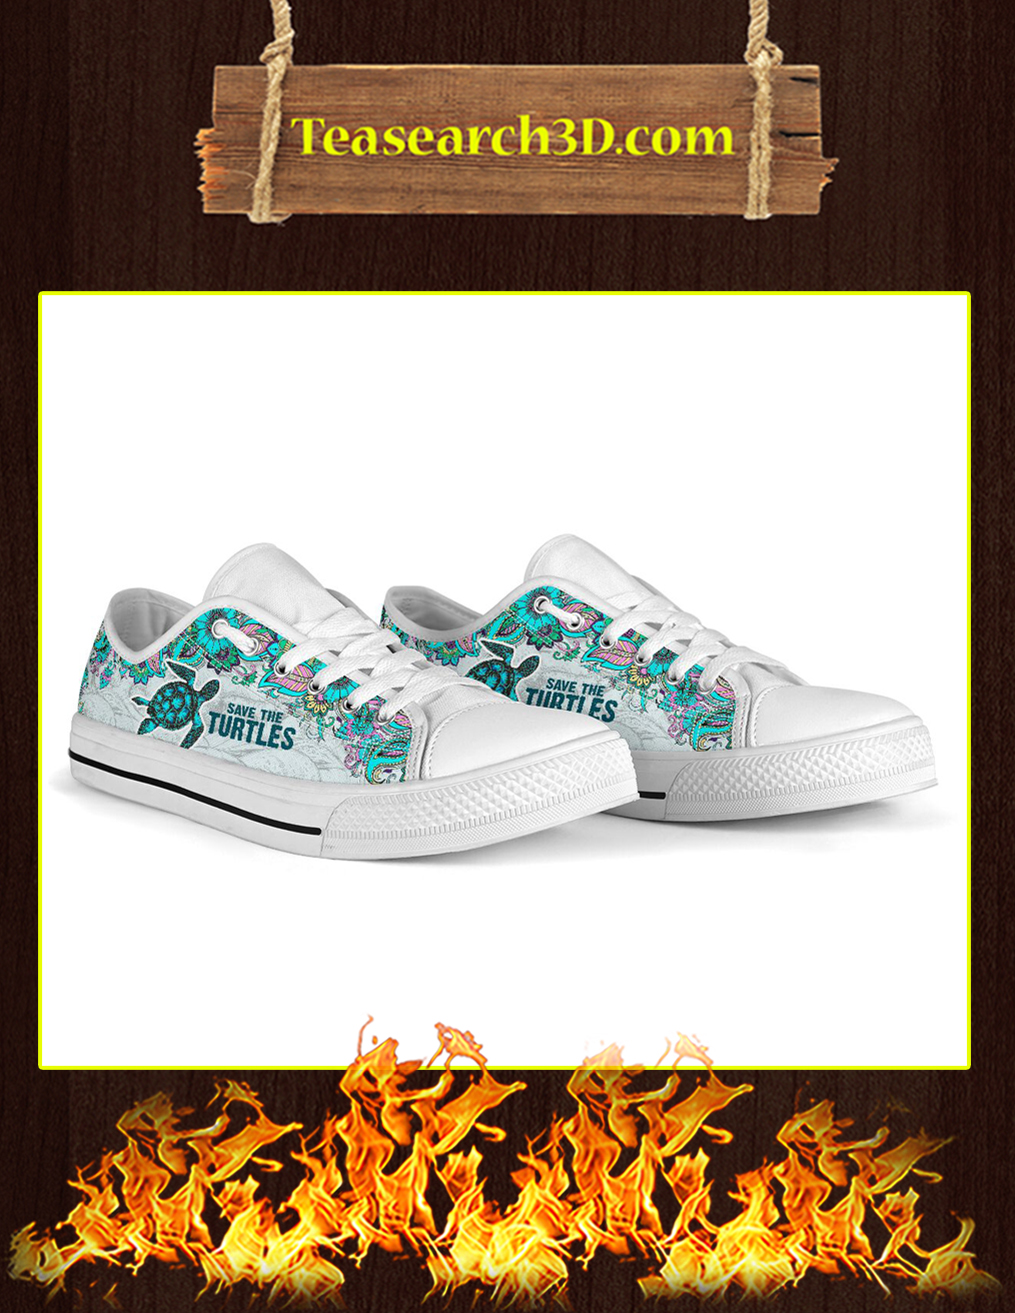 Save The Turtles Low Top - Pic 2